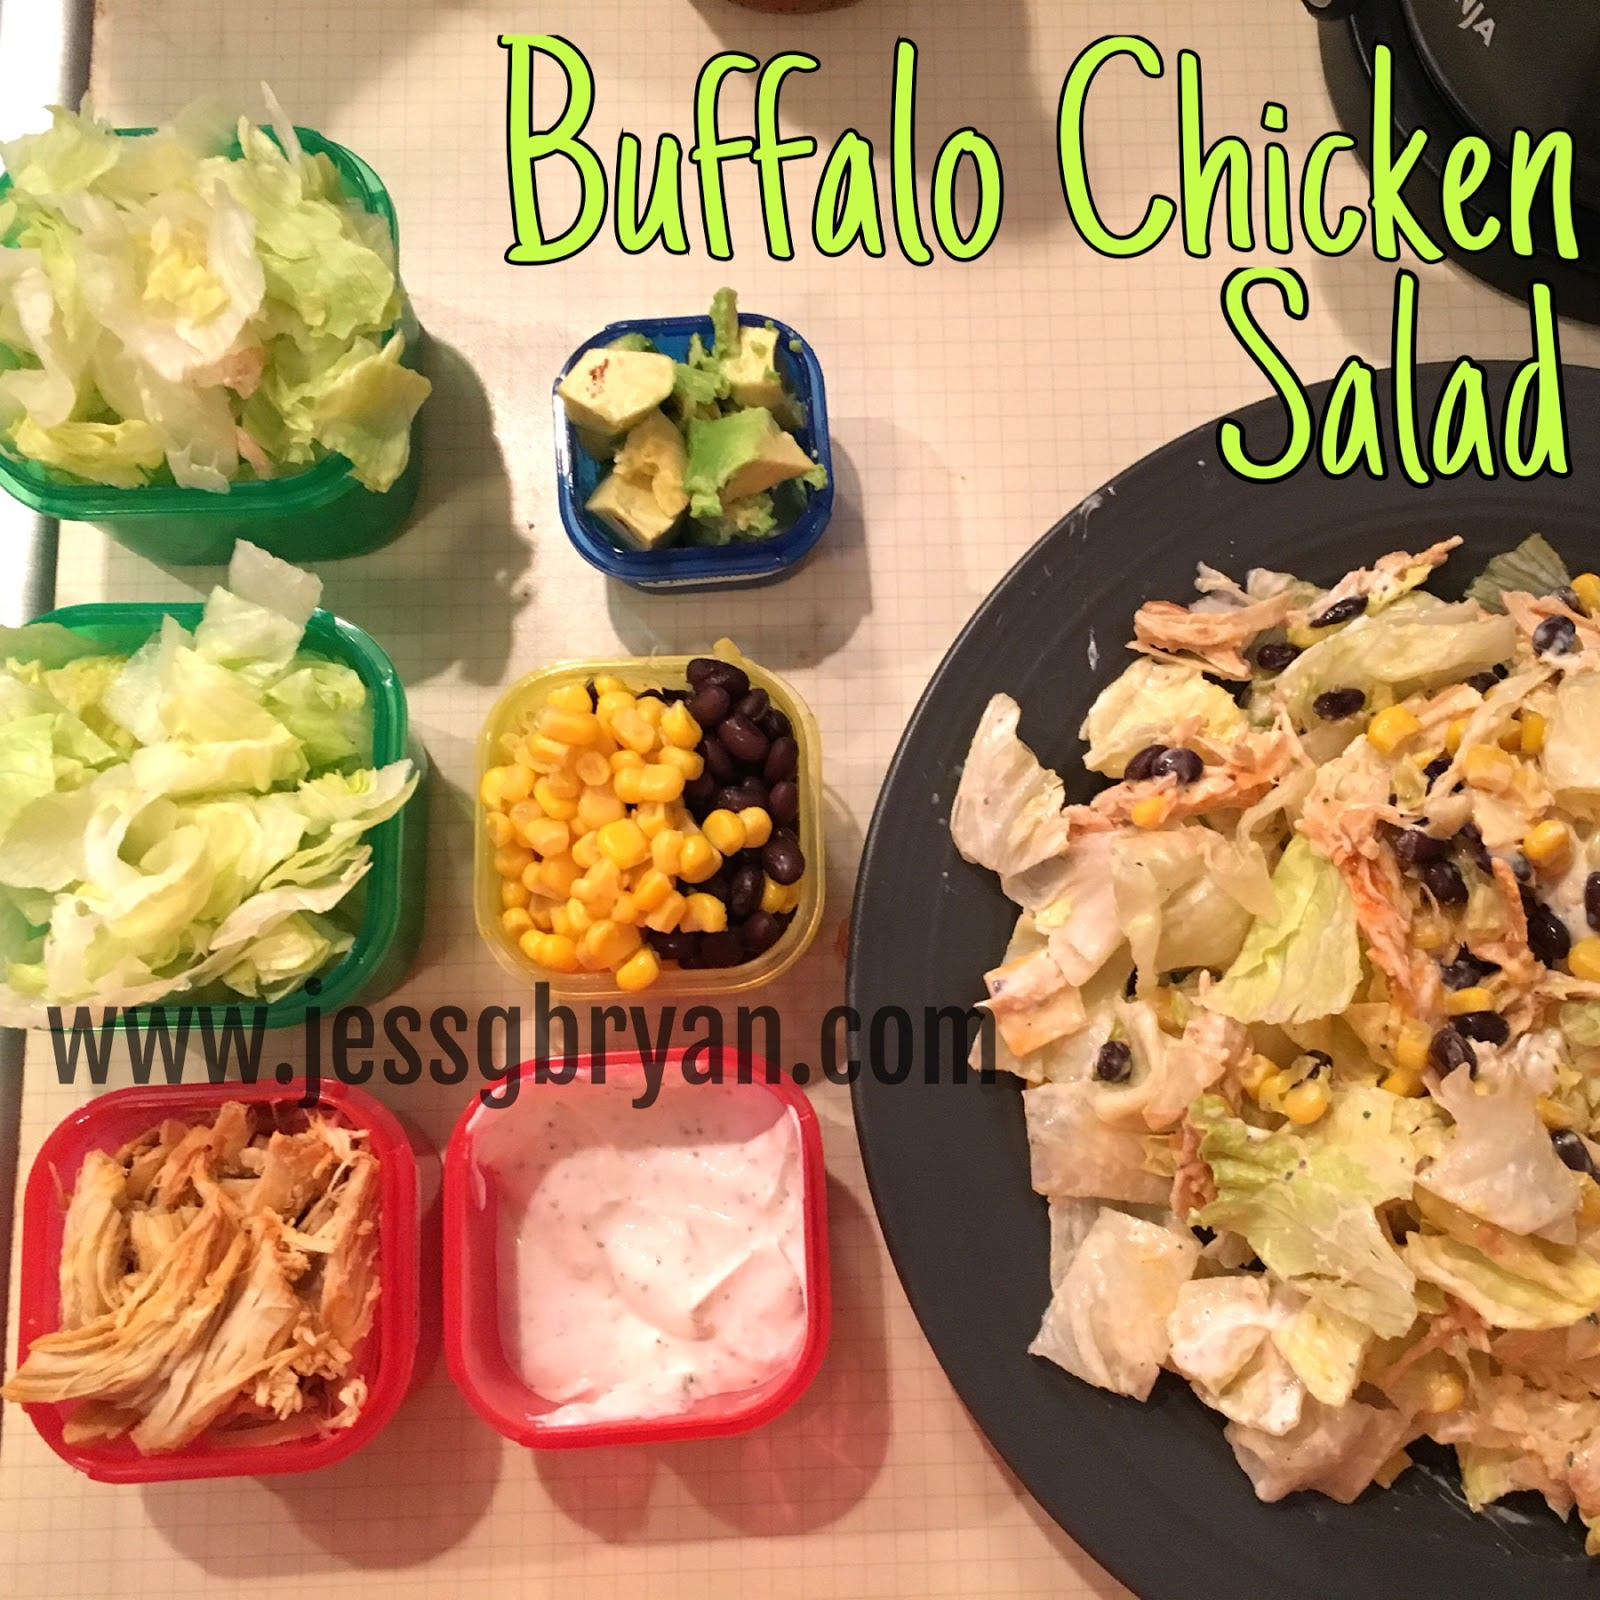 buffalo chicken salad 21 day fix approved jess bryan nutritionist